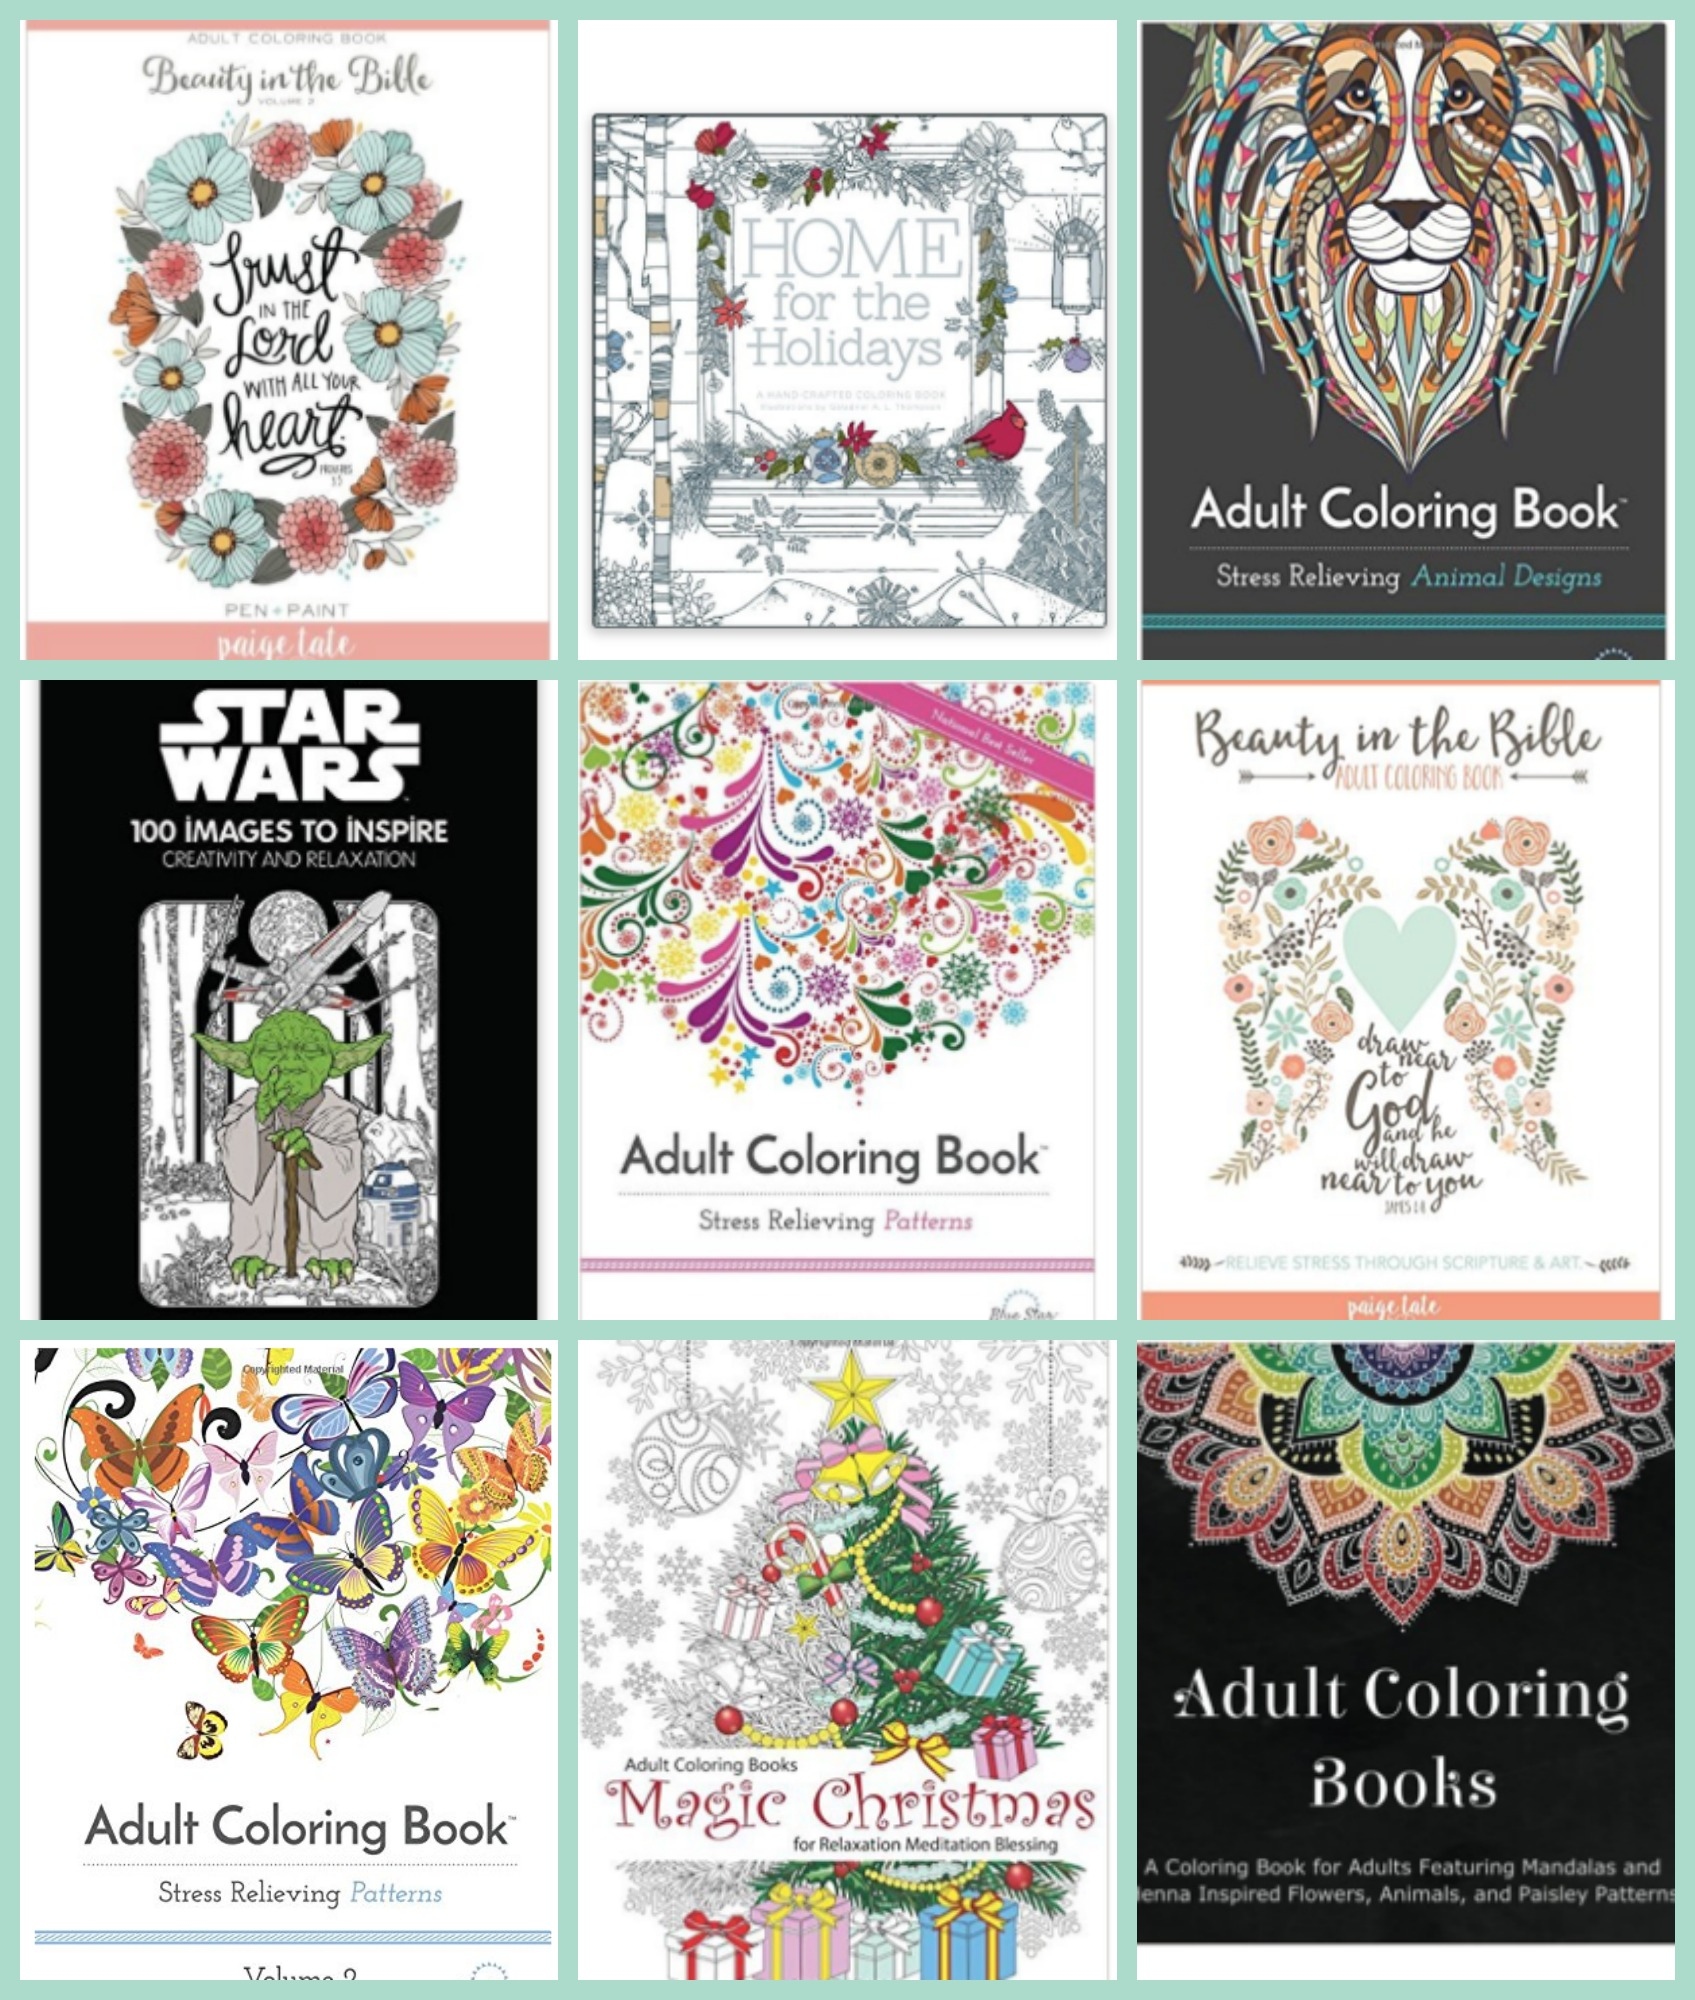 Great Deals on Adult Coloring Books at Amazon | Passionate Penny Pincher